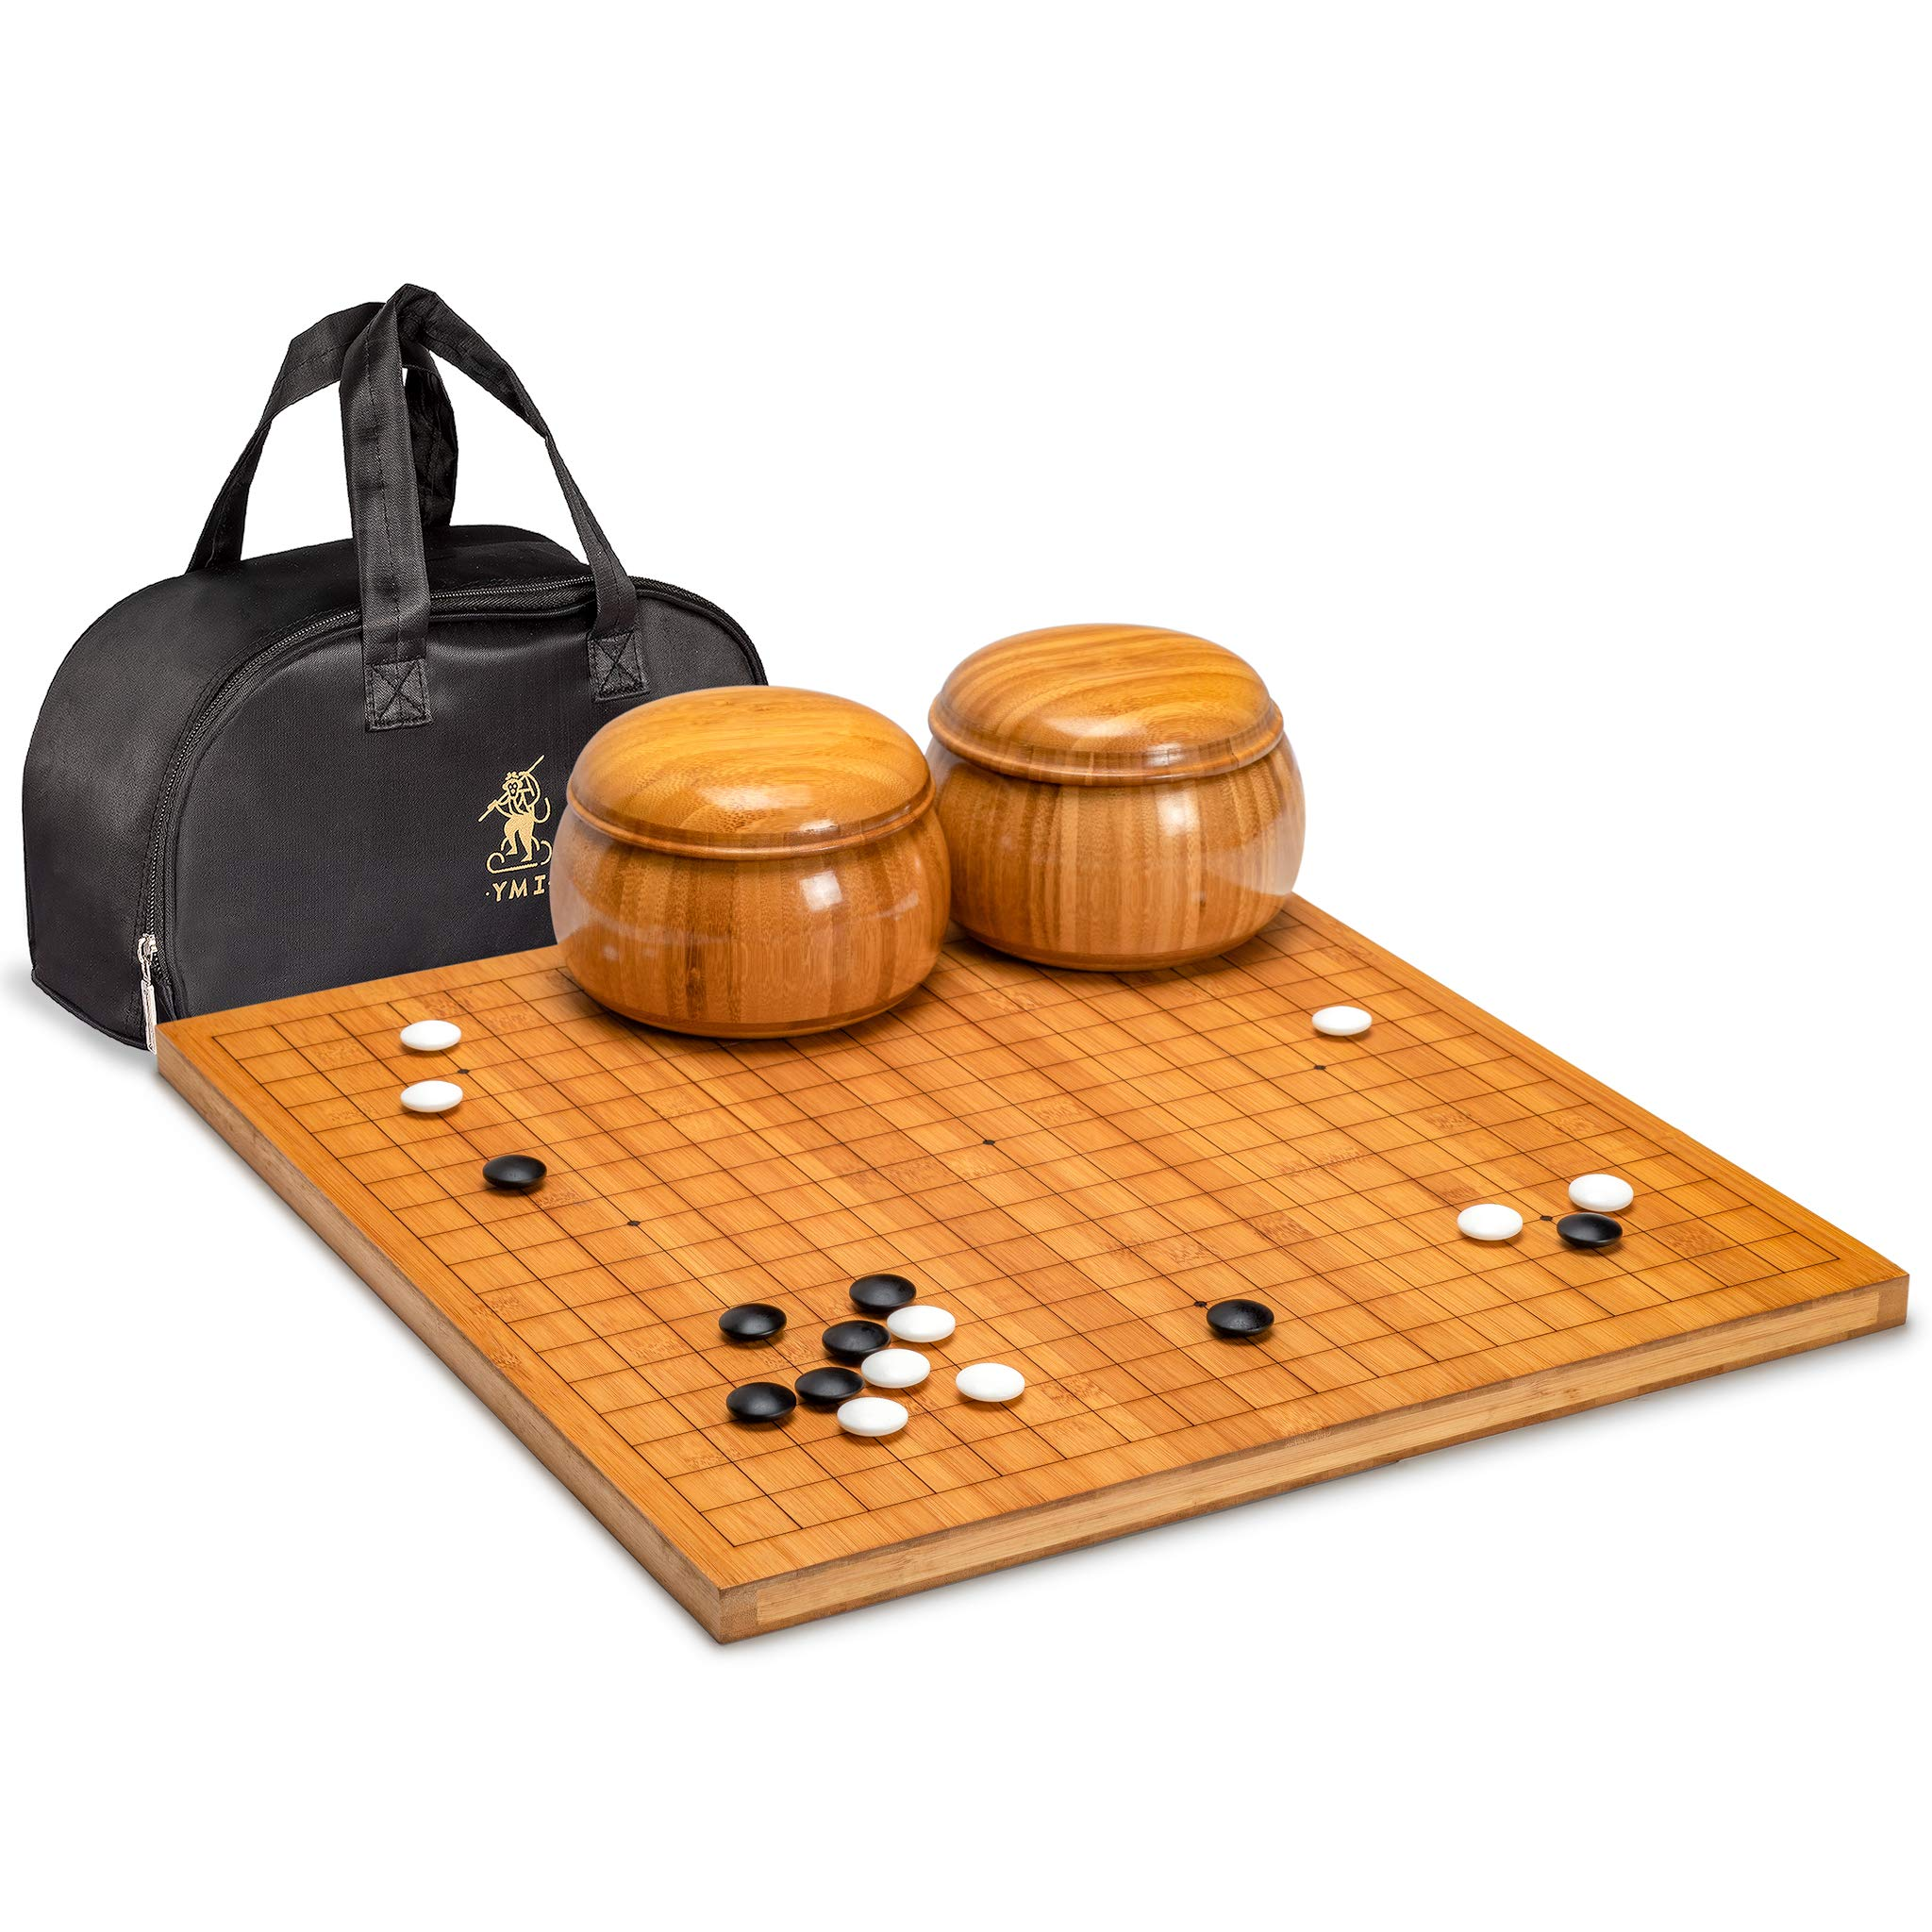 Yellow Mountain Imports Go Game Set with 0.8'' Chinese Bamboo Go Board - Reversible (19x19 and 13x13) - Size 33 (9.2mm) Stones - Double Convex Korean Hardened Glass Stones and Bamboo Bowls